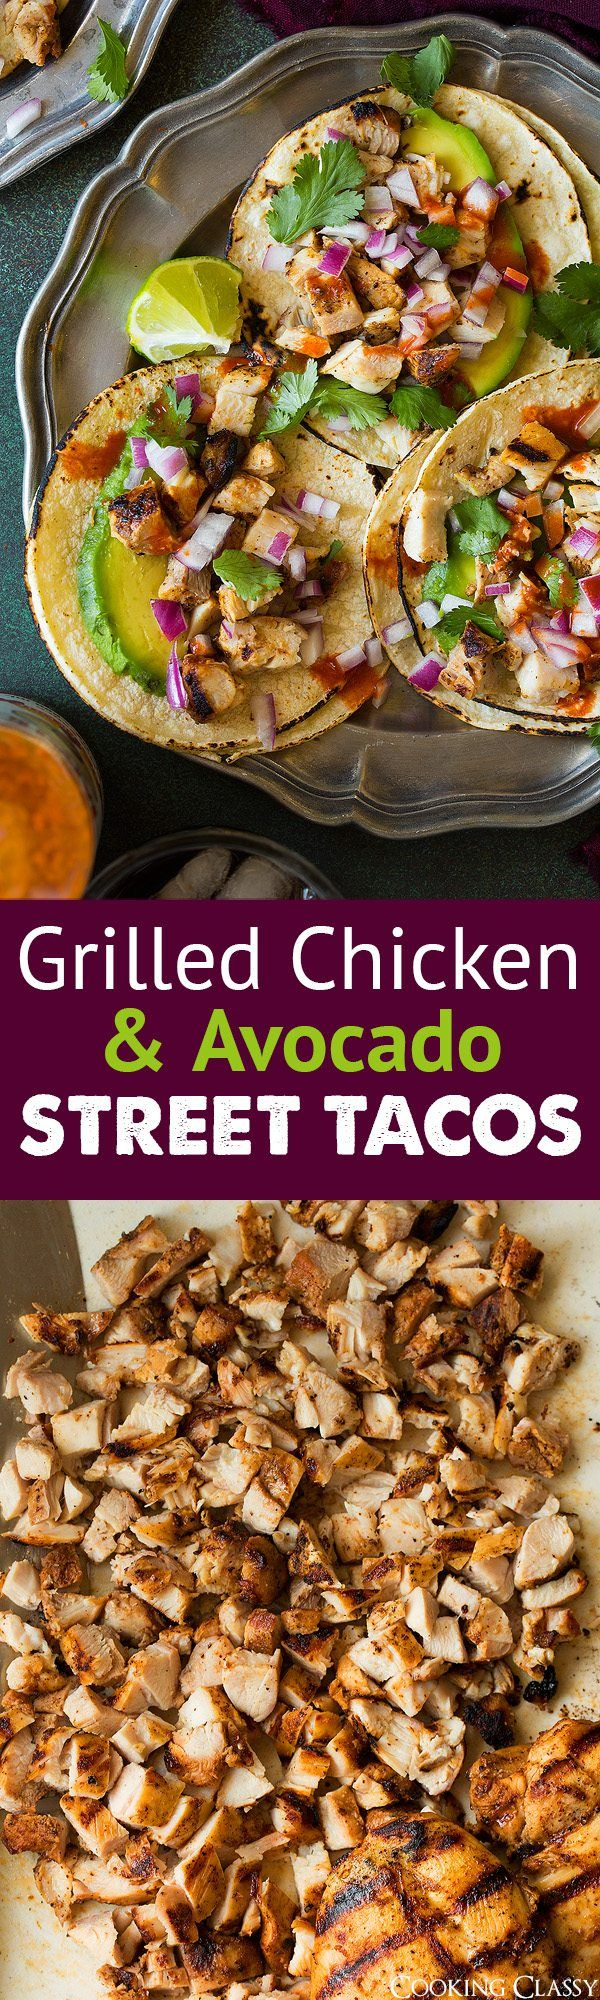 Chicken Street Tacos - I make these for guests all the time and they always get compliments! Chicken thighs are soaked in a bright well seasoned marinade and grilled to perfection (you'll be fighting over those little charred crispy pieces).  They're so flavorful and so easy to make. #chicken #recipe #streettacos #tacos #mexicanfood #avocado #mexican #easy #healthy #poultry